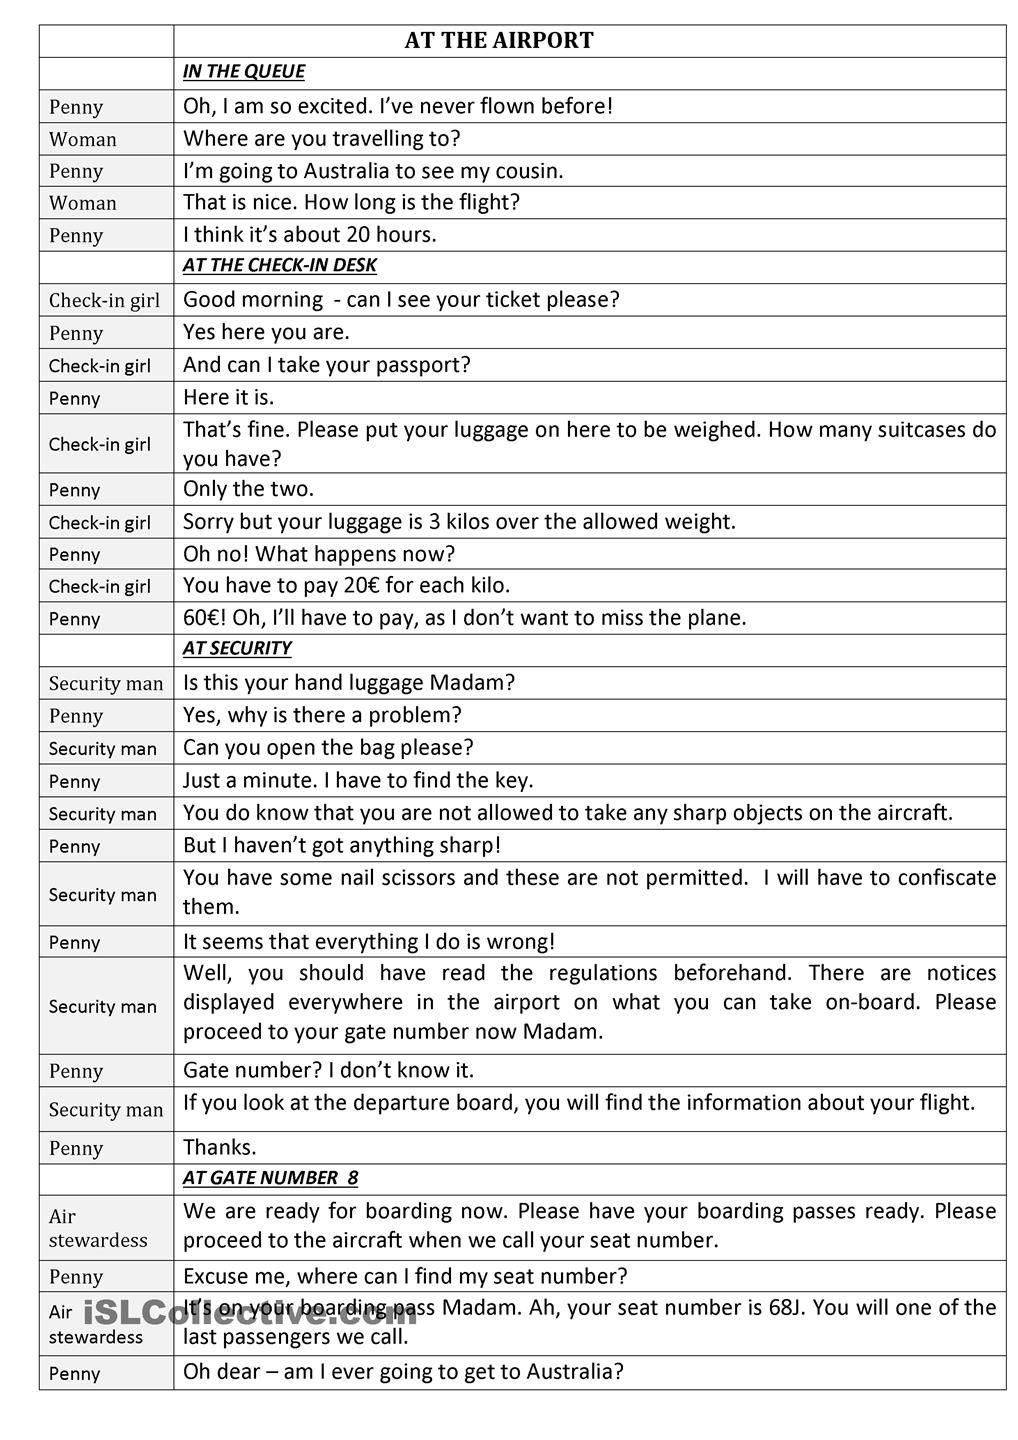 At The Airport | Exercises - English! | Pinterest